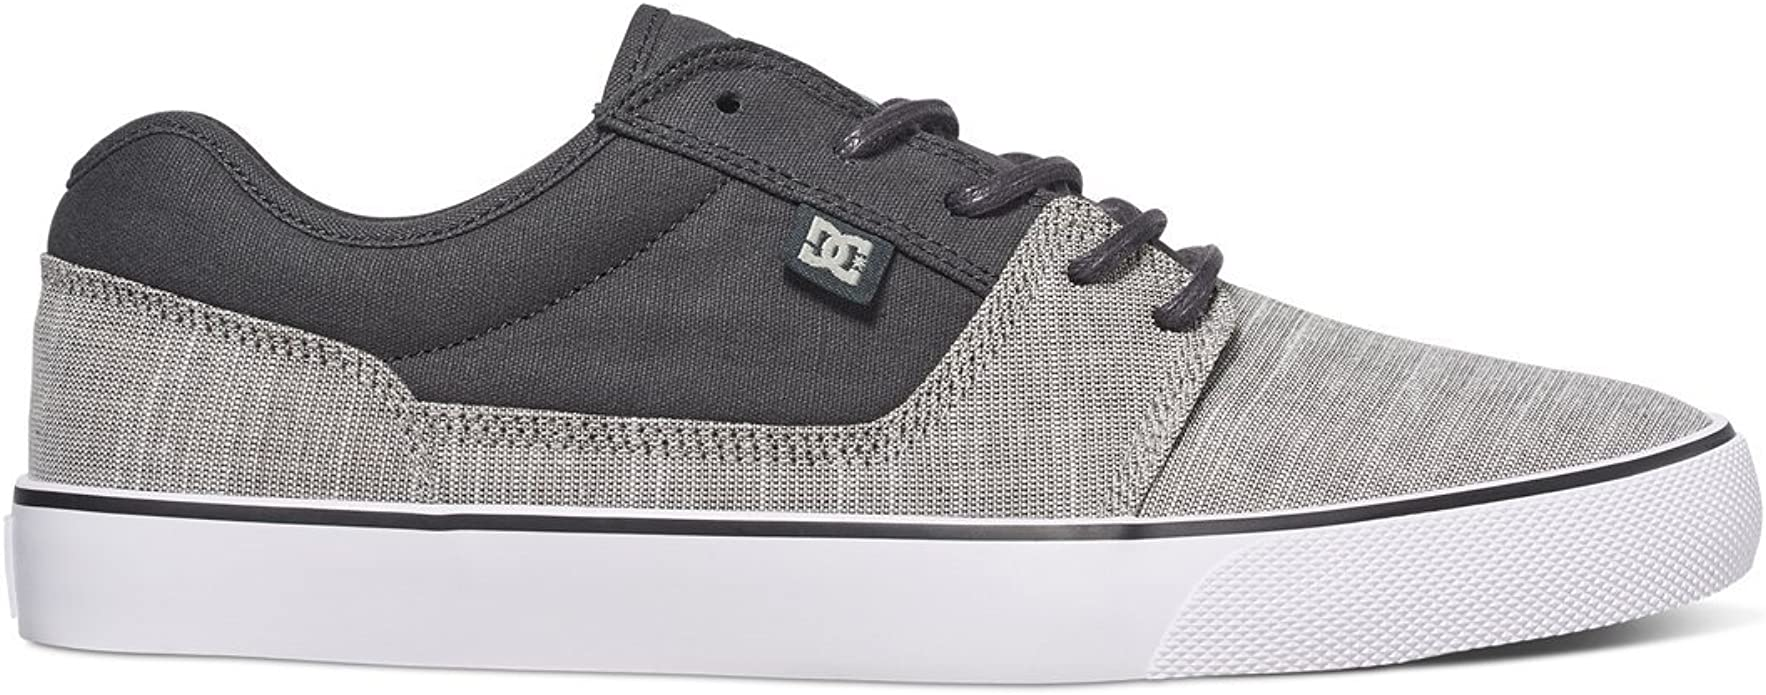 DC Shoes Tonik TX SE Sneakers Skateschuhe Herren Anthrazit/Grau